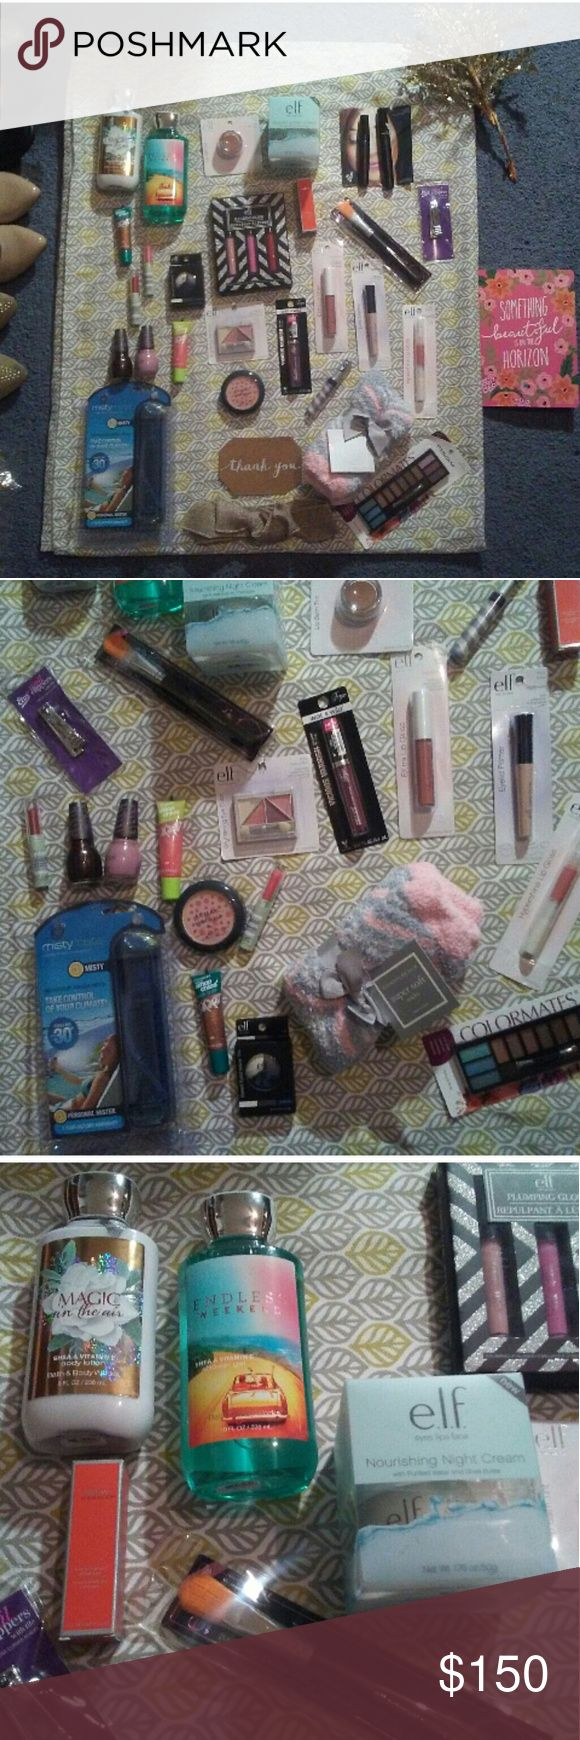 """? NWT HUGE BEAUTY LOT ? Everything listed is NWT  Bath & Body Works Magic in the air lotion Bath & Body Works Endless Weekend shower gel Charter Club Super Soft Socks Misty Mate Personal Mister  Almay Smart Shade #10 Pink Rose Blush 2 Covergirl Smoochies Sizzle Gloss #556 """"Glow for it"""" & 540 """"Hot Stuff"""" 2 Covergirl Natureluxe Gloss Balm #255 """"Marble"""" & #225 """"Anemone"""" 2 Kylie Jenner for Sinful Colors Demi-Matte Trend Matters Velvet Nail Polish in """"I klove you"""" & """"Mauve on""""  ?LOOK IN COMMENTS…"""